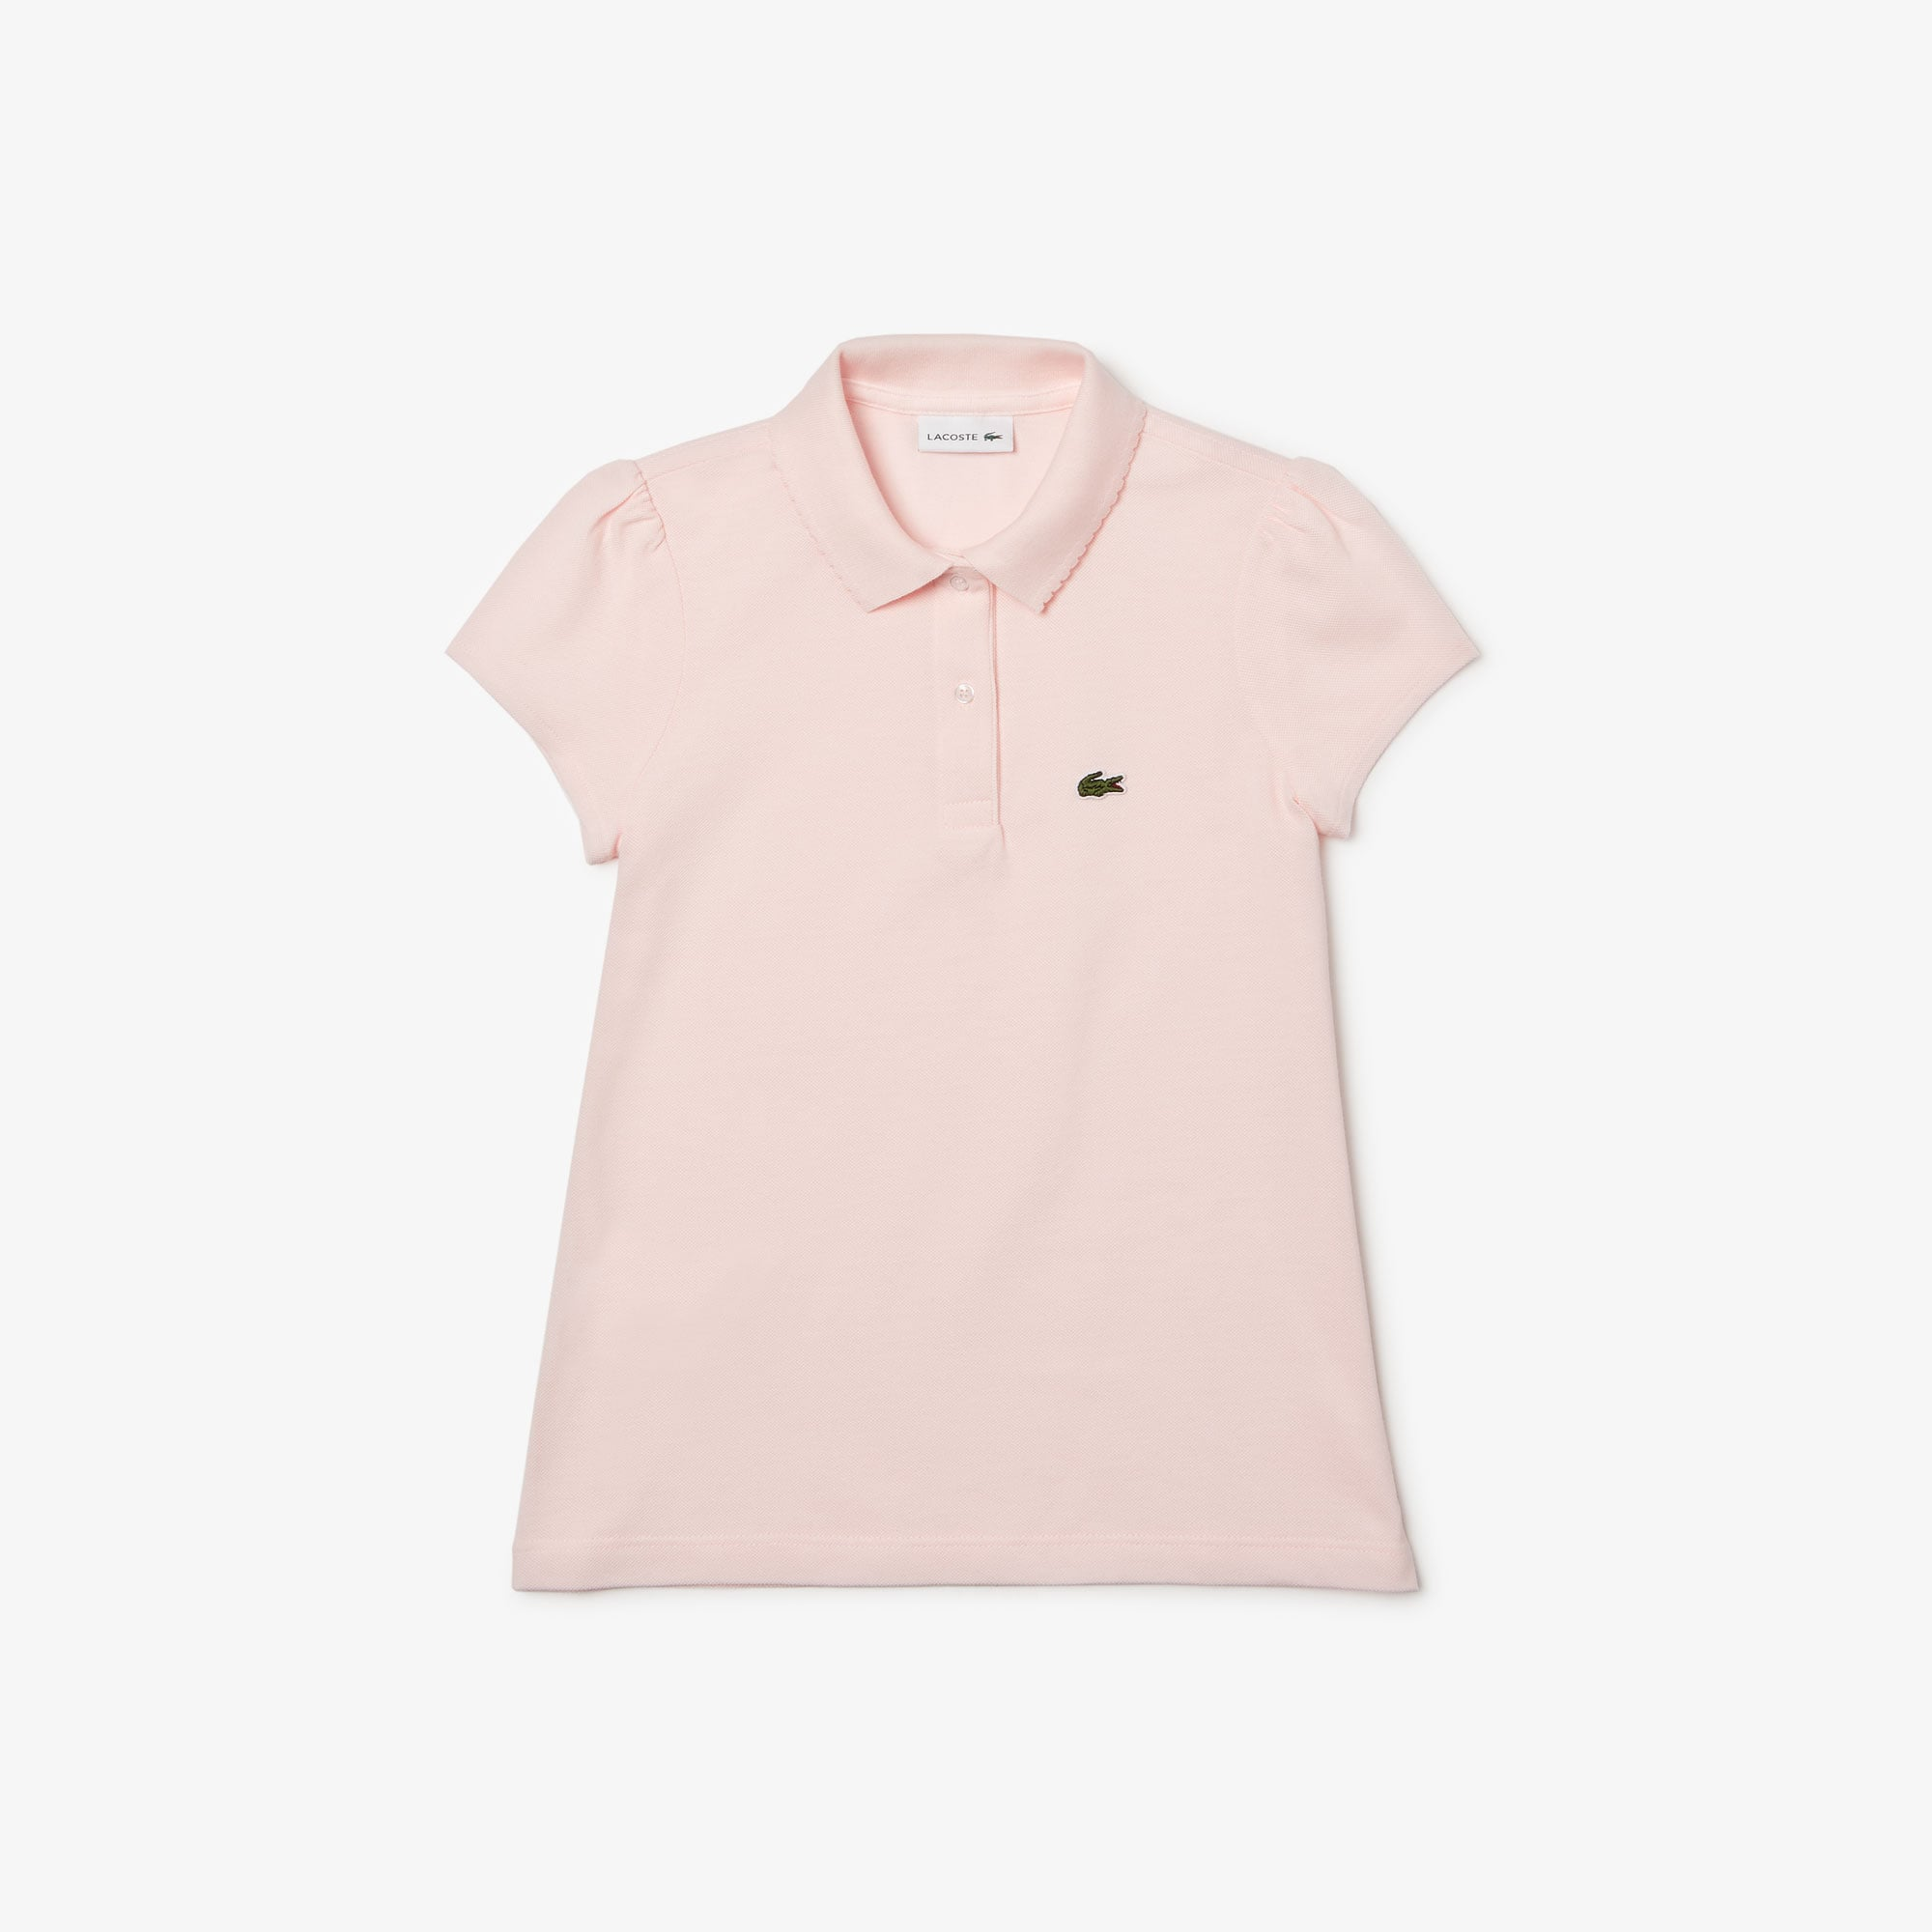 d0aee24476 Girls' Lacoste Scalloped Collar Mini Piqué Polo Shirt